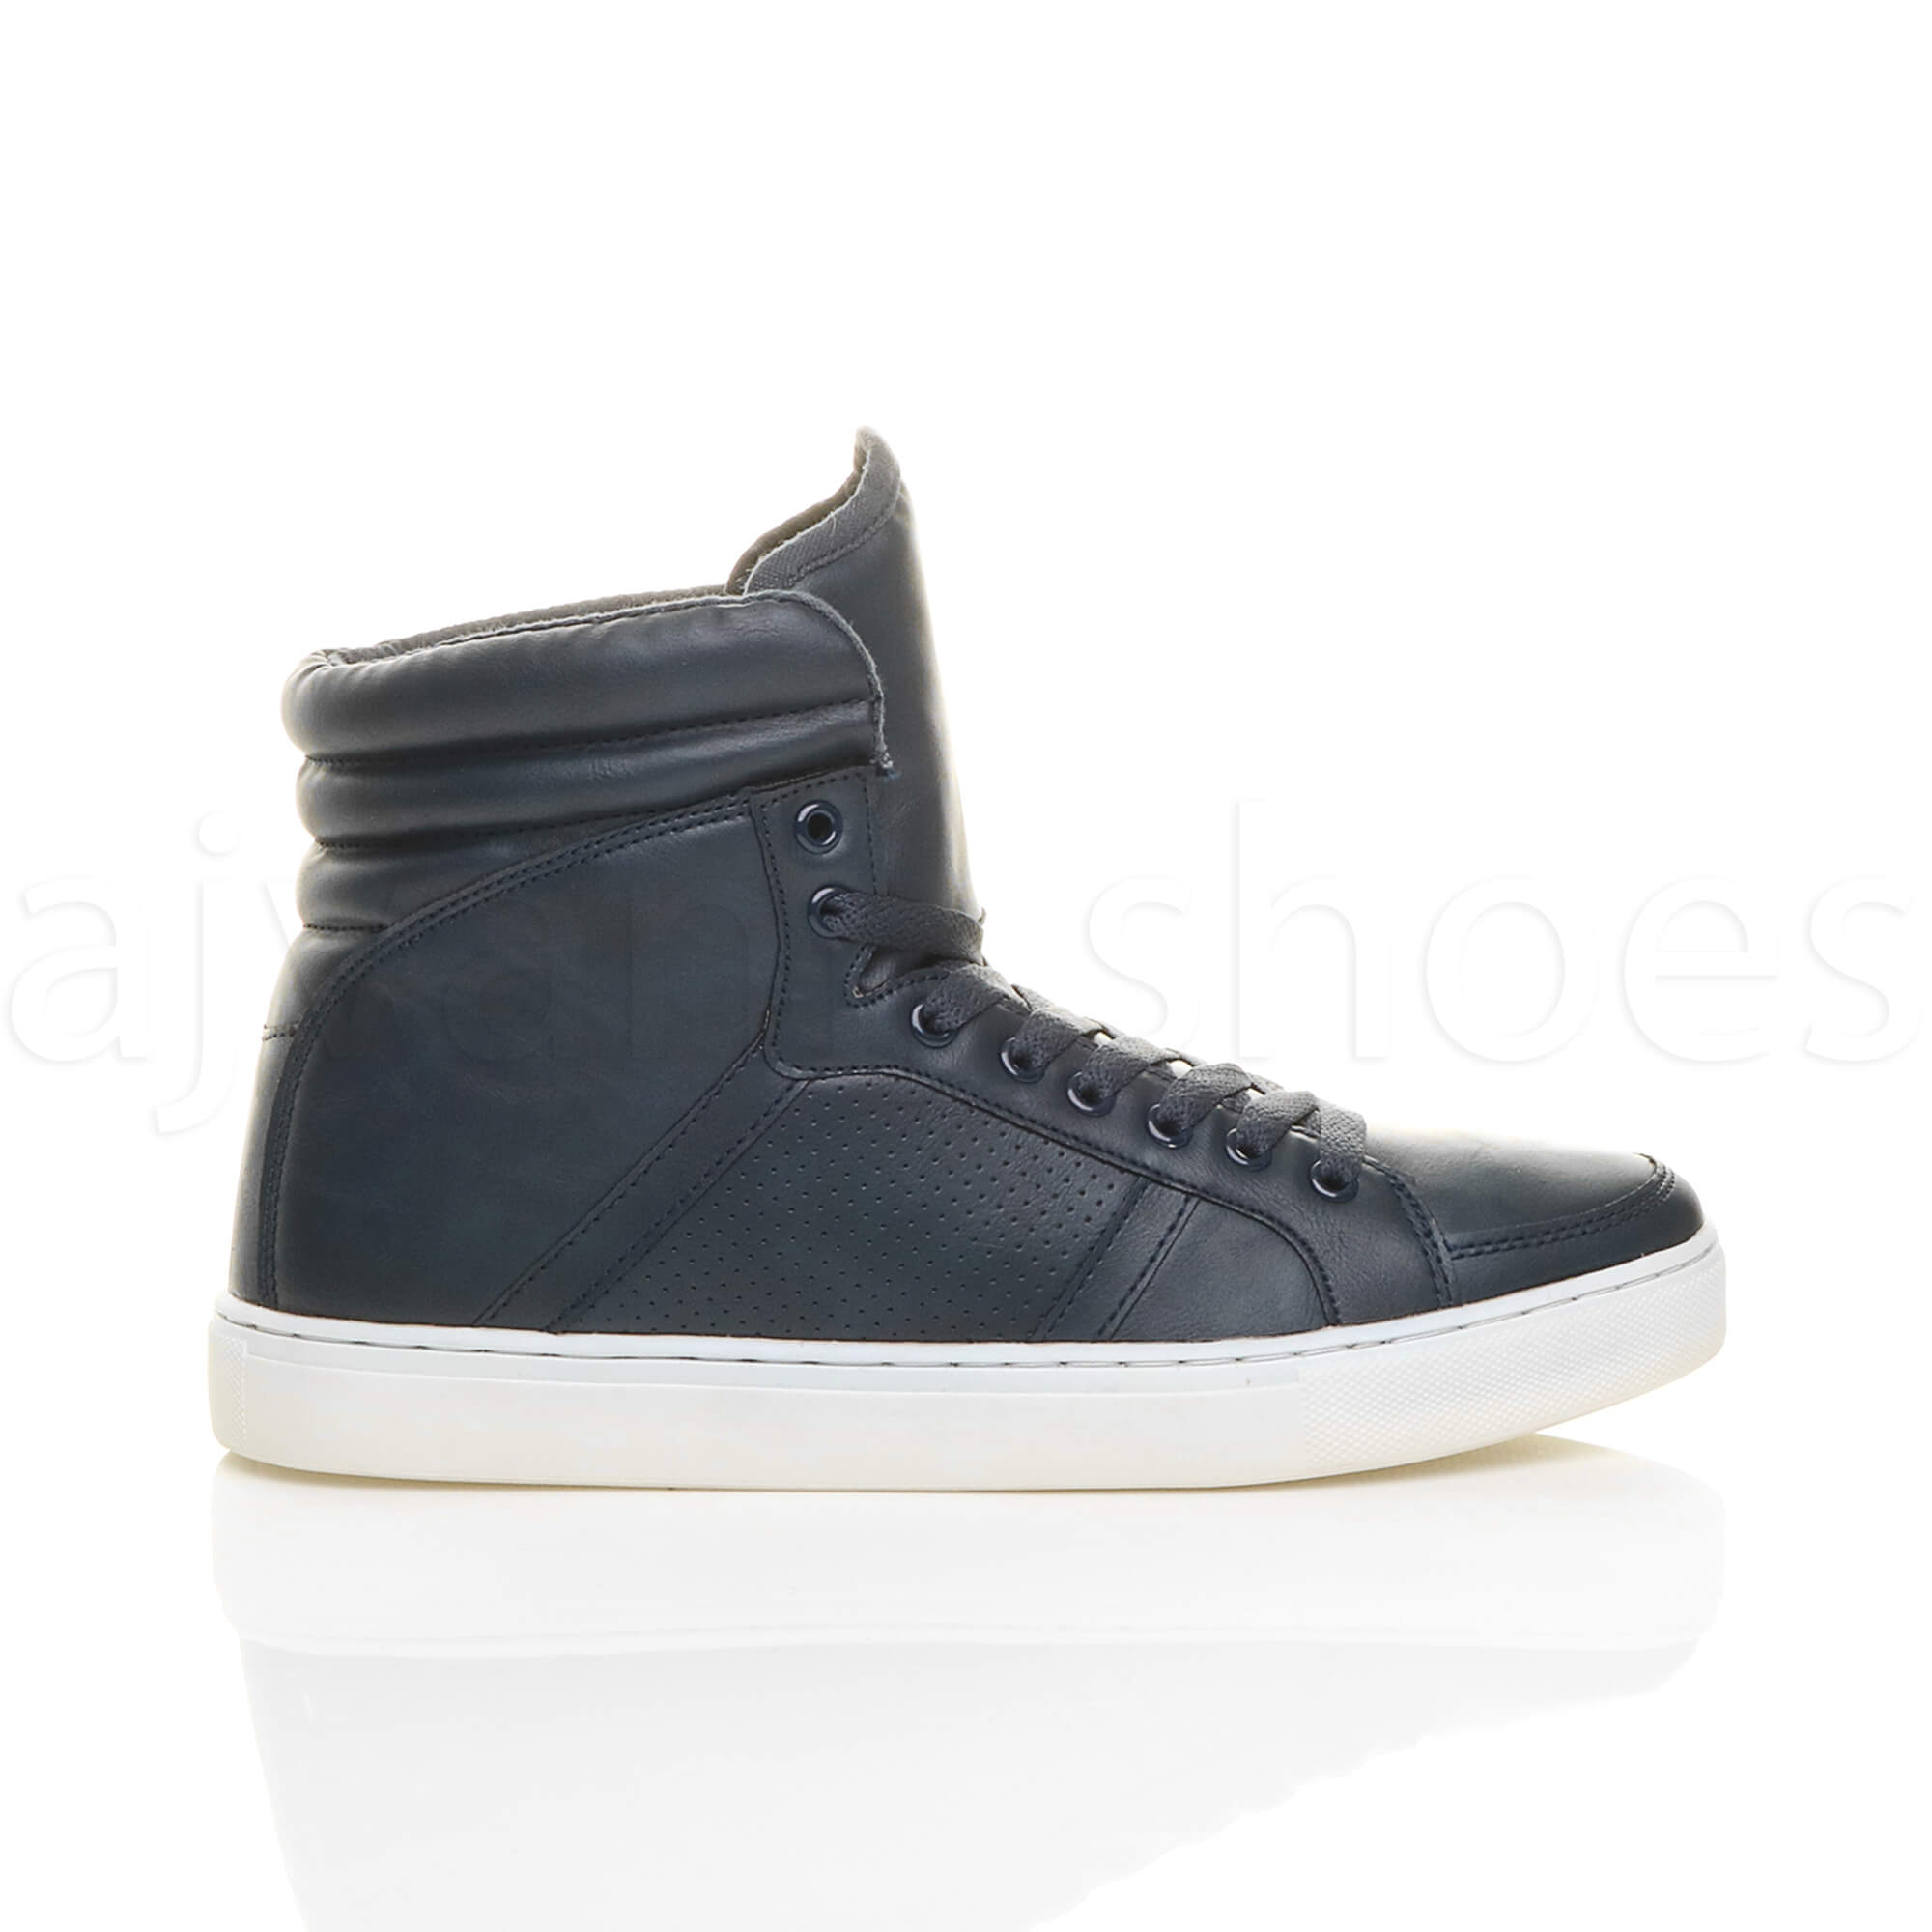 MENS-LACE-UP-CASUAL-FLAT-HI-HIGH-TOP-ANKLE-BOOTS-SHOES-TRAINERS-SNEAKERS-SIZE thumbnail 17